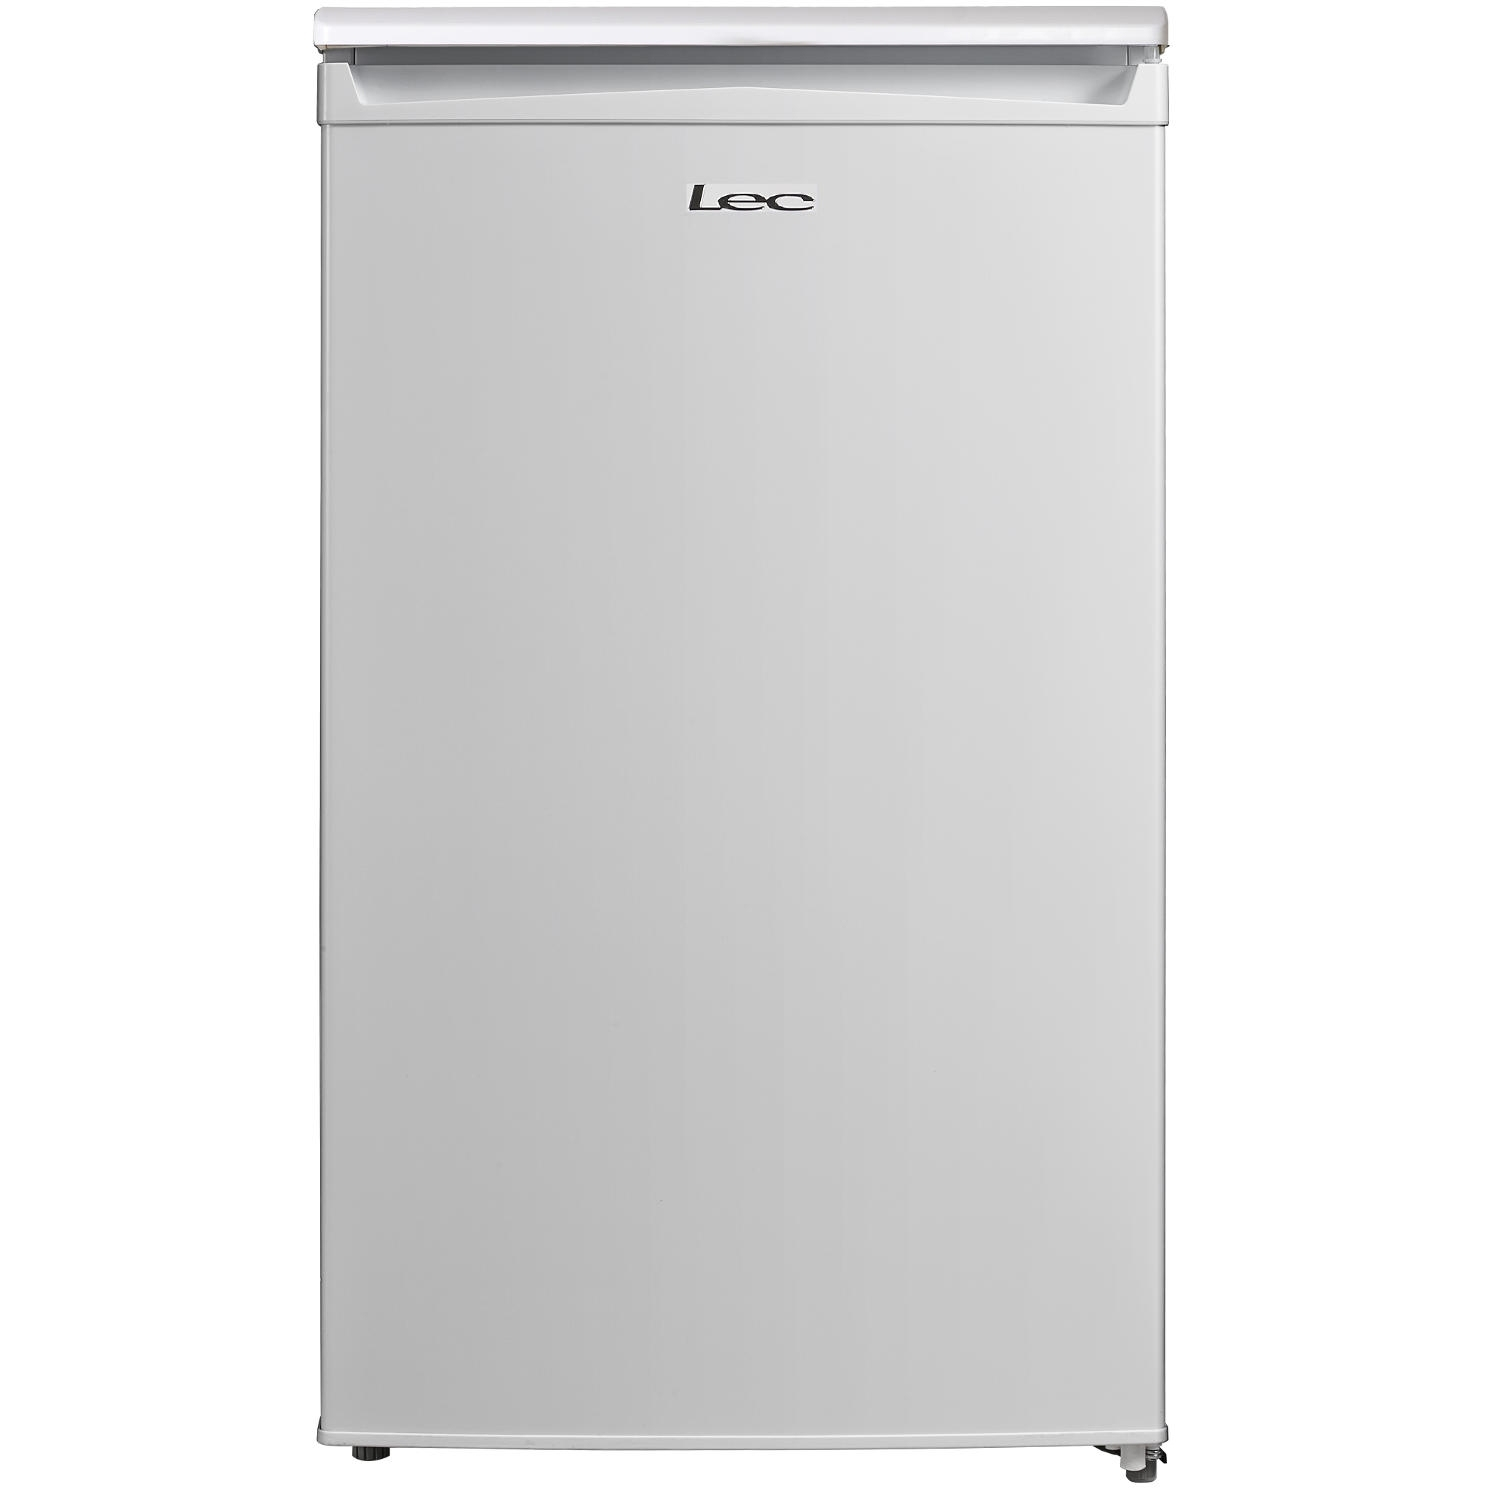 Lec 50cm Undercounter Fridge - White - A+ Rated - 0